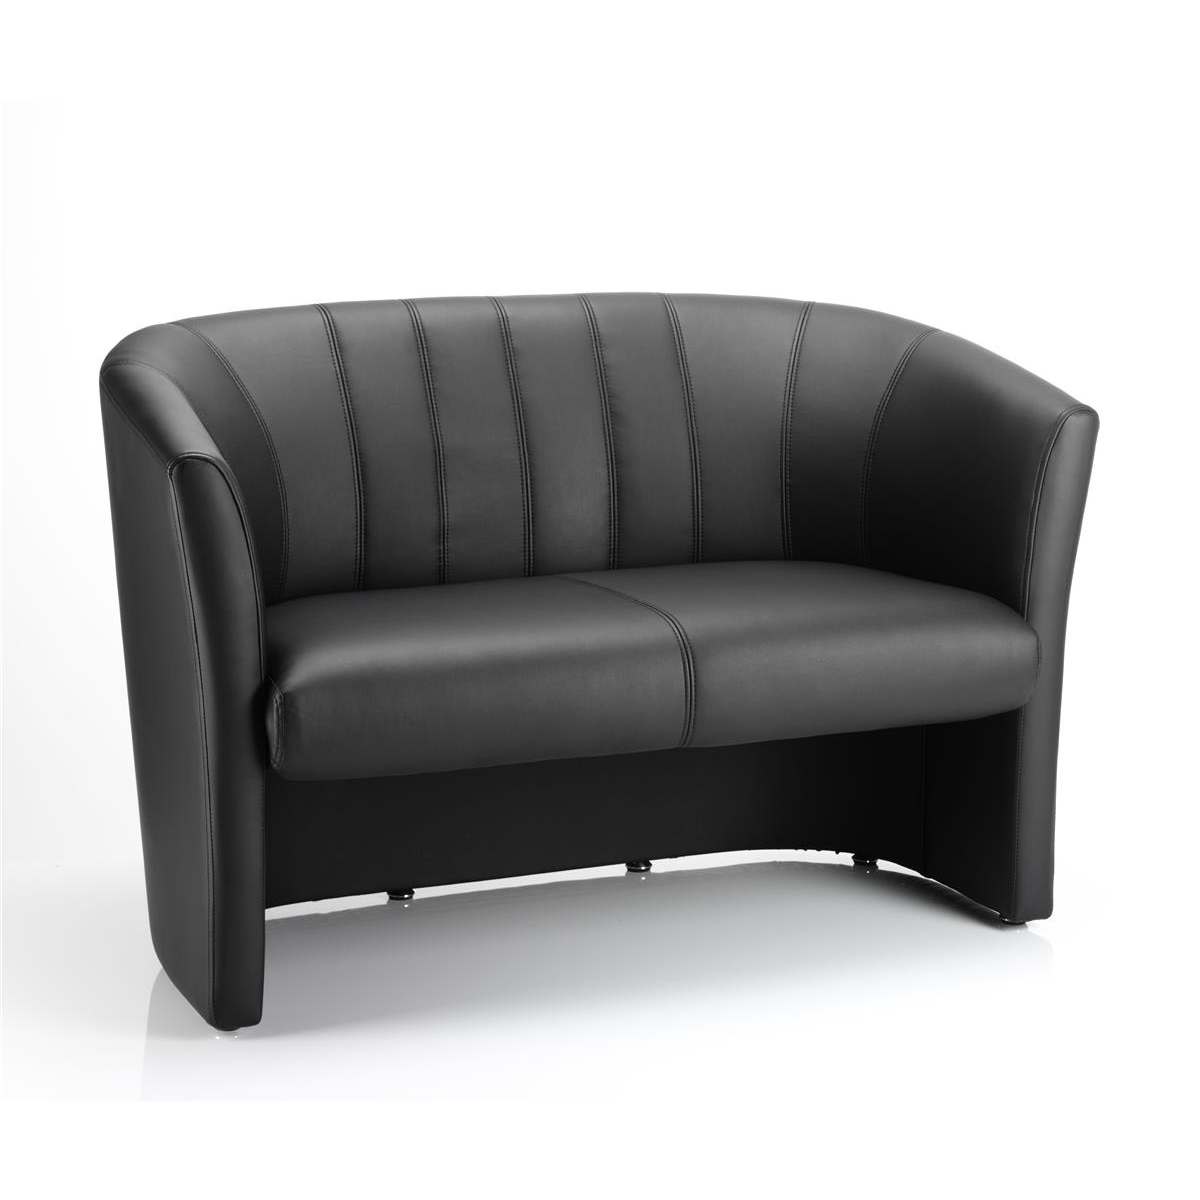 #Trexus Tub 2 Seater Sofa Black Leather 970x510x460mm Ref BR000105